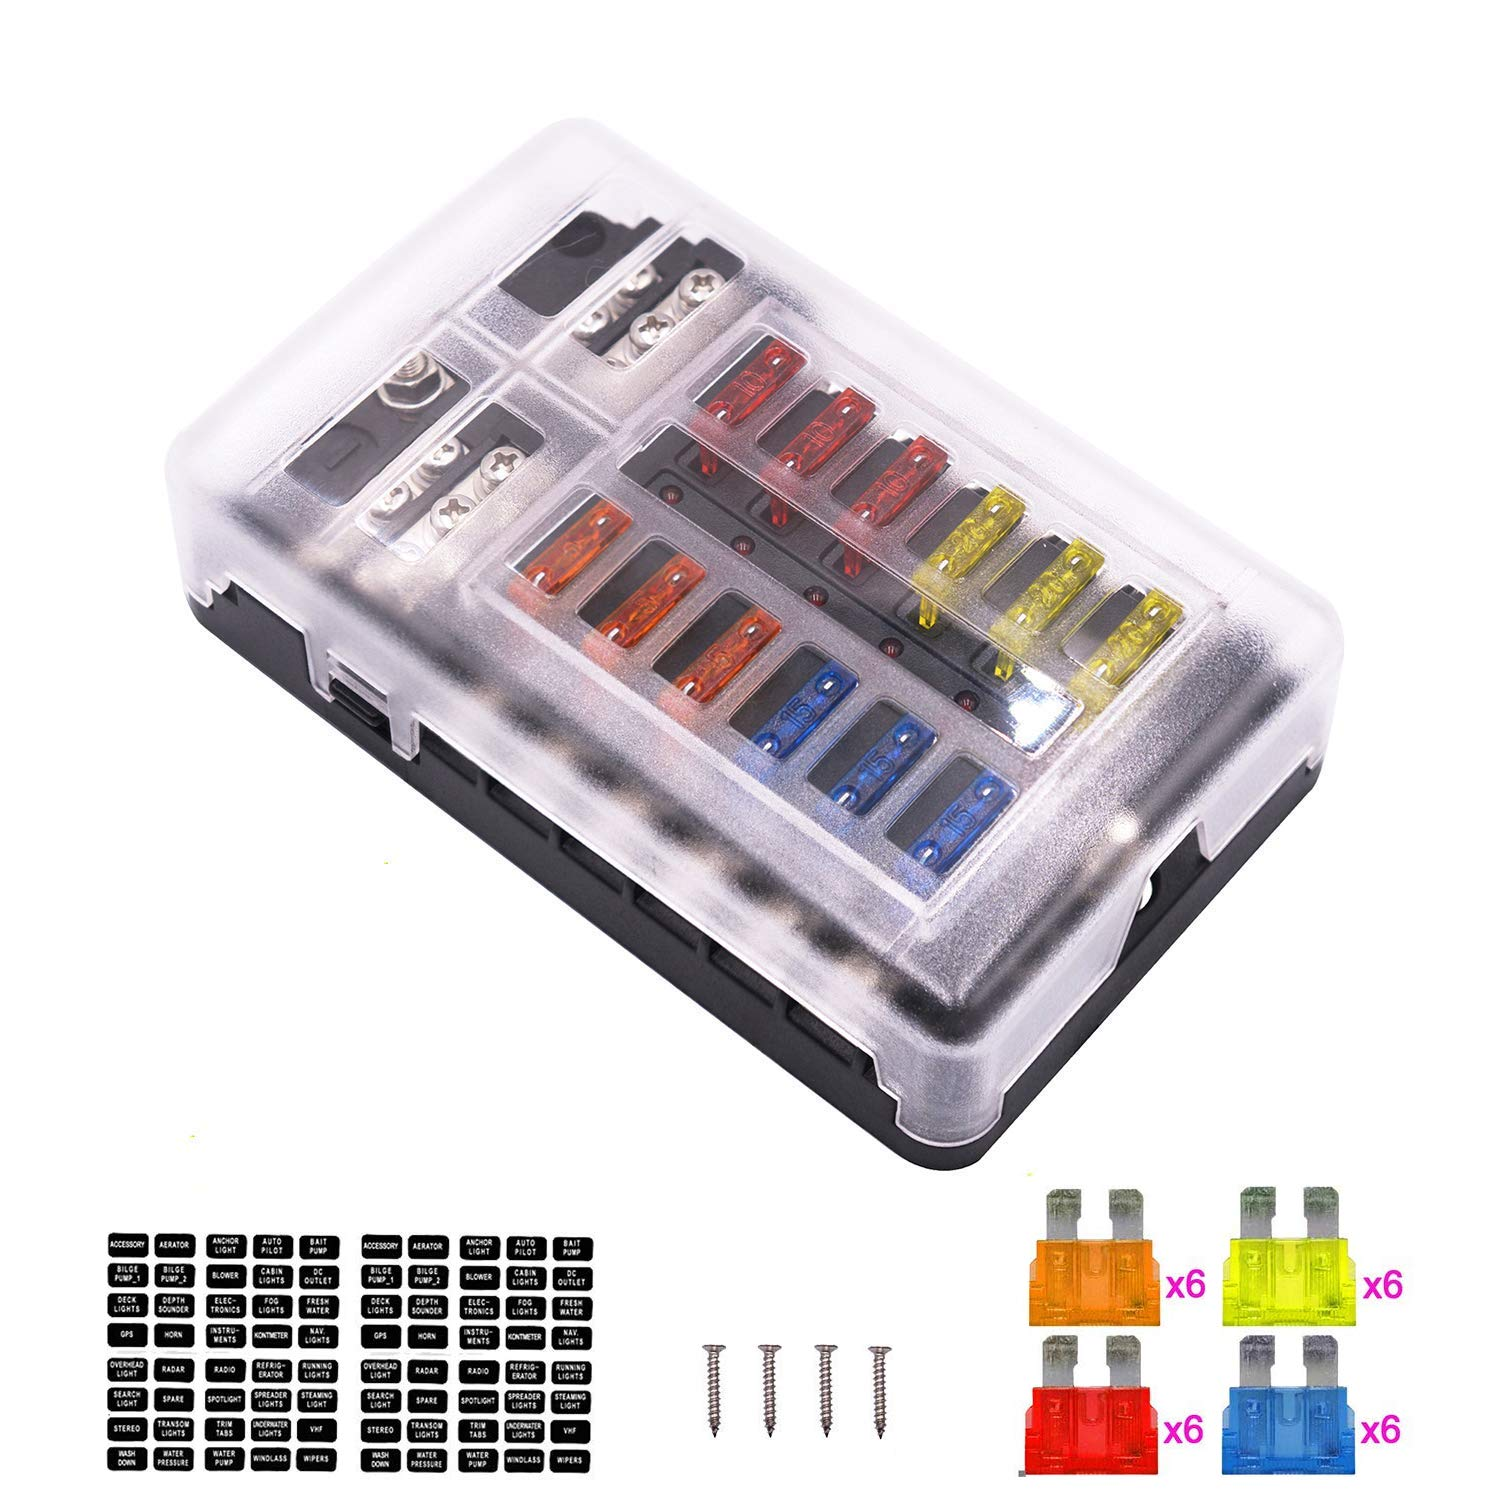 bus fuse box amazon com 12 way fuse box blade fuse block holder screw nut bus bar fuse box 12 way fuse box blade fuse block holder